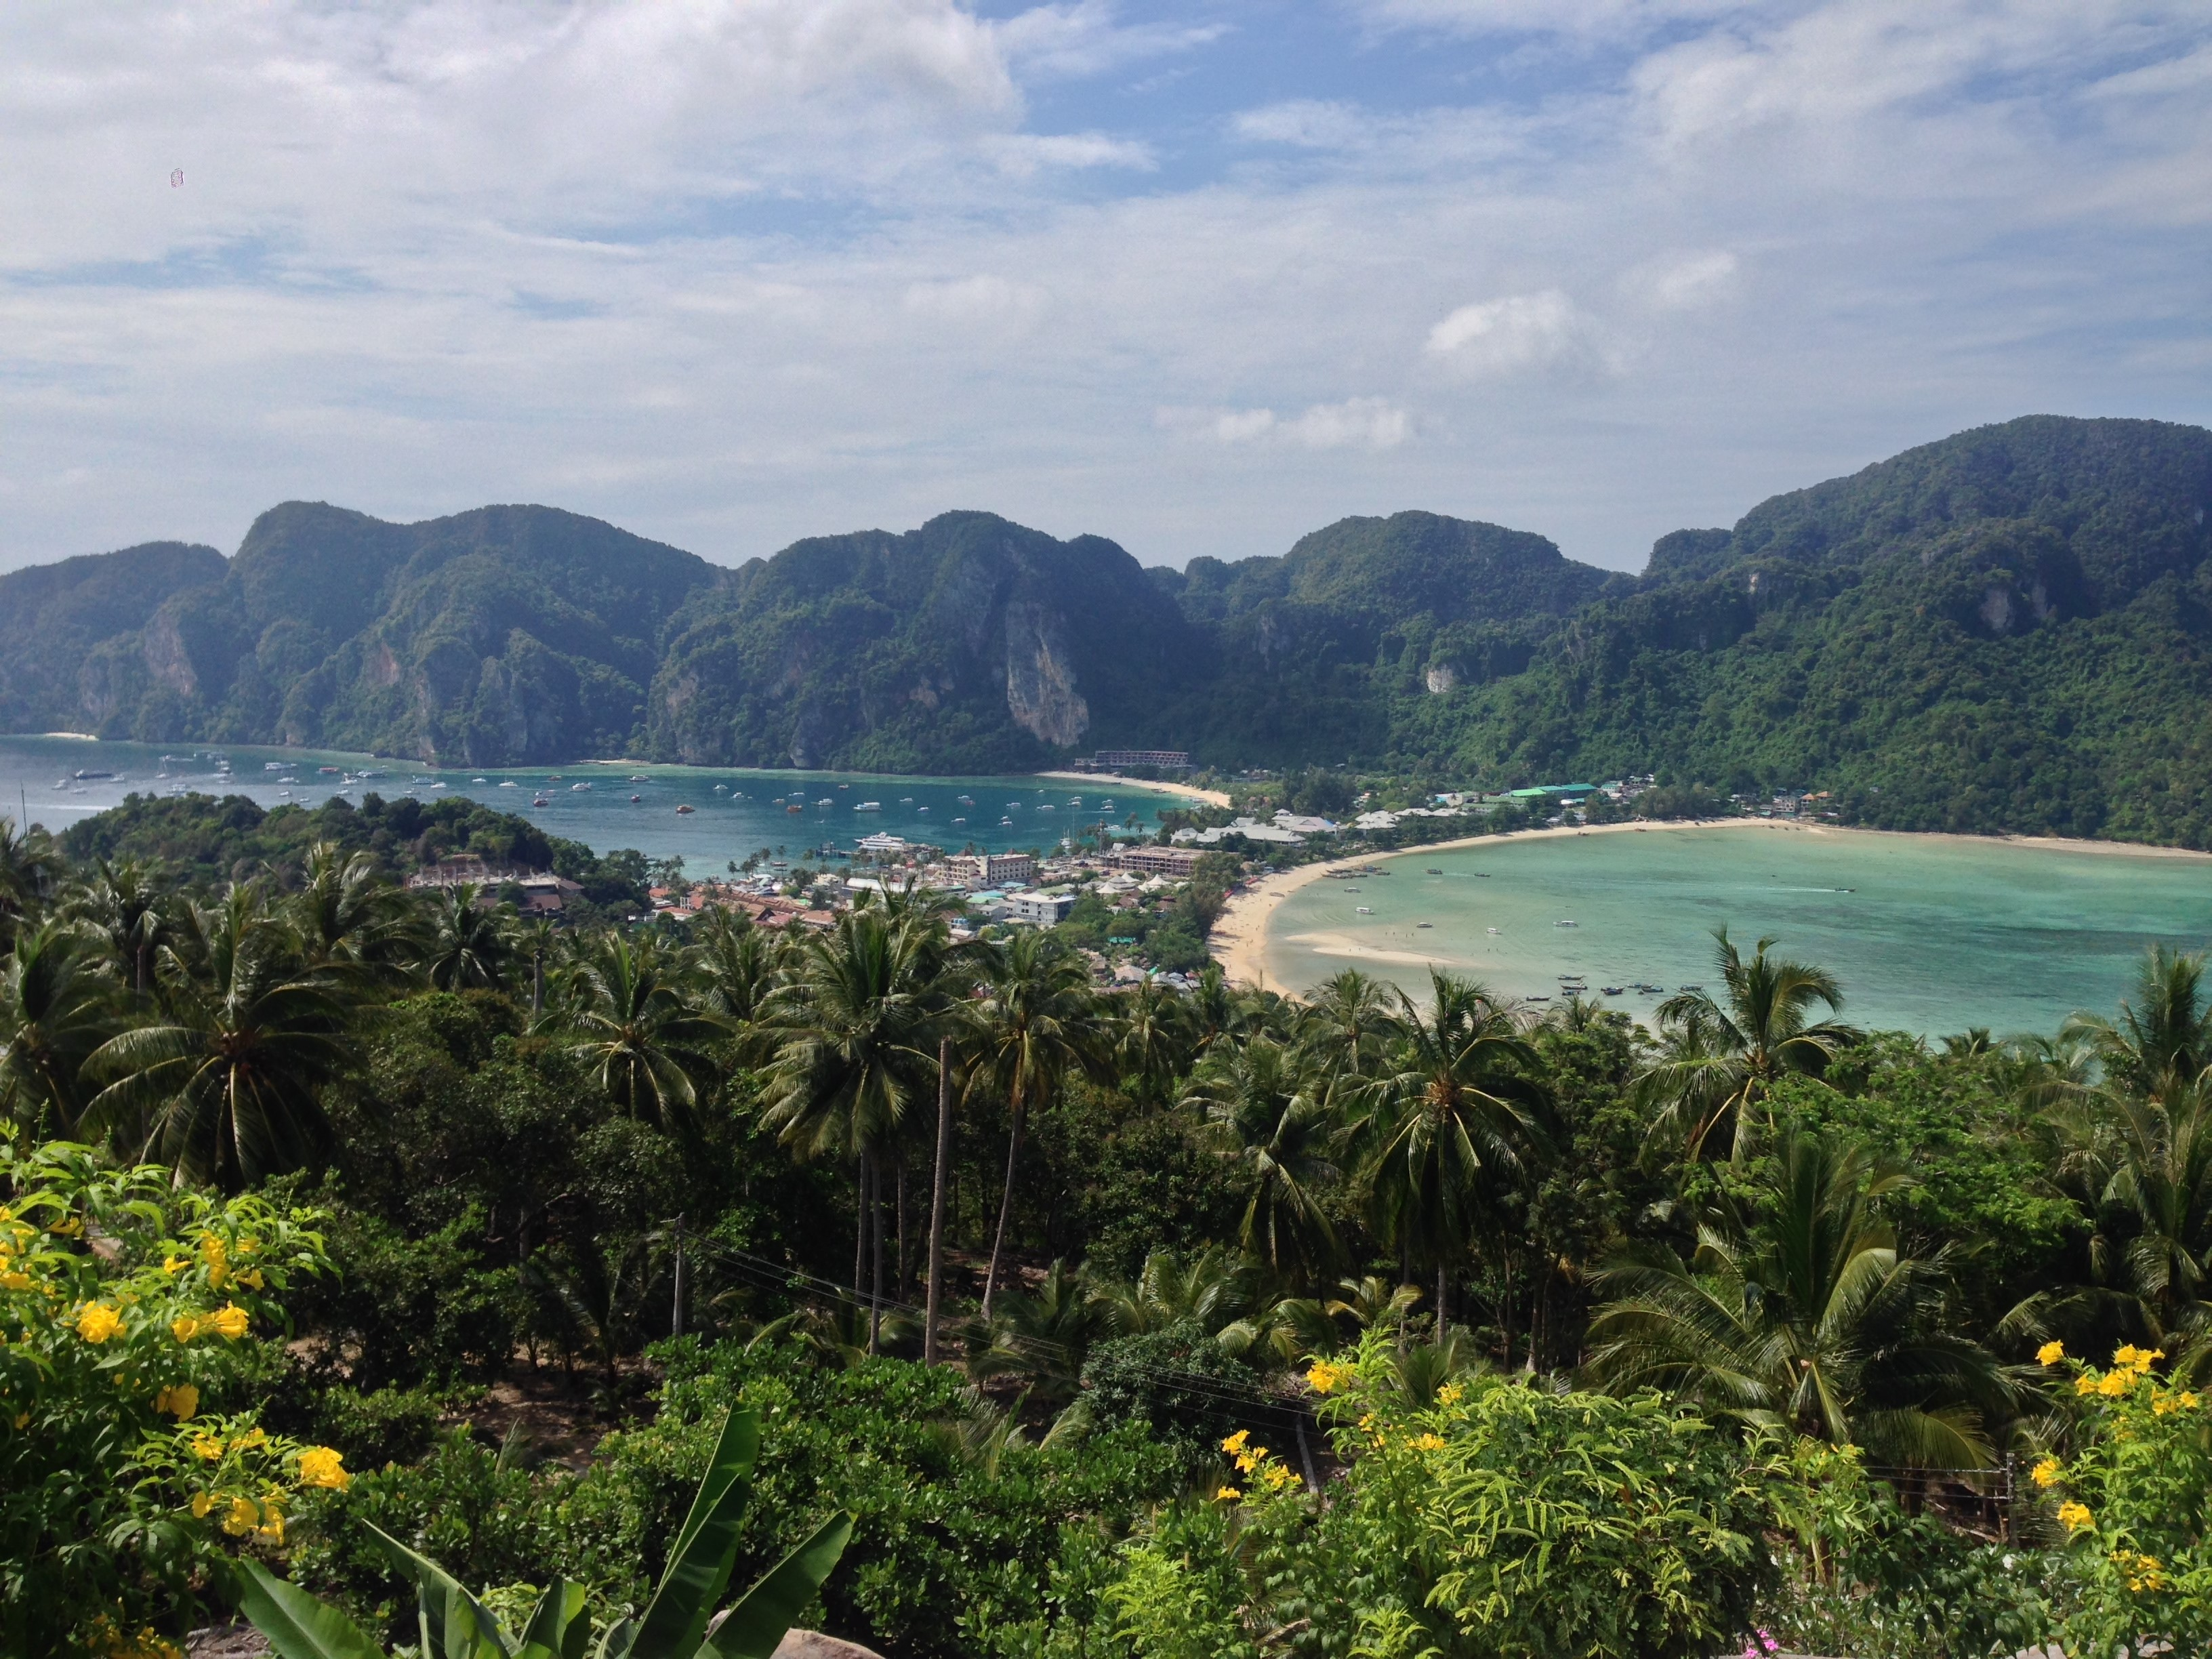 thailand, koh phi phi, island, travelling, backpacking, travel, beach, bay, twin bays,